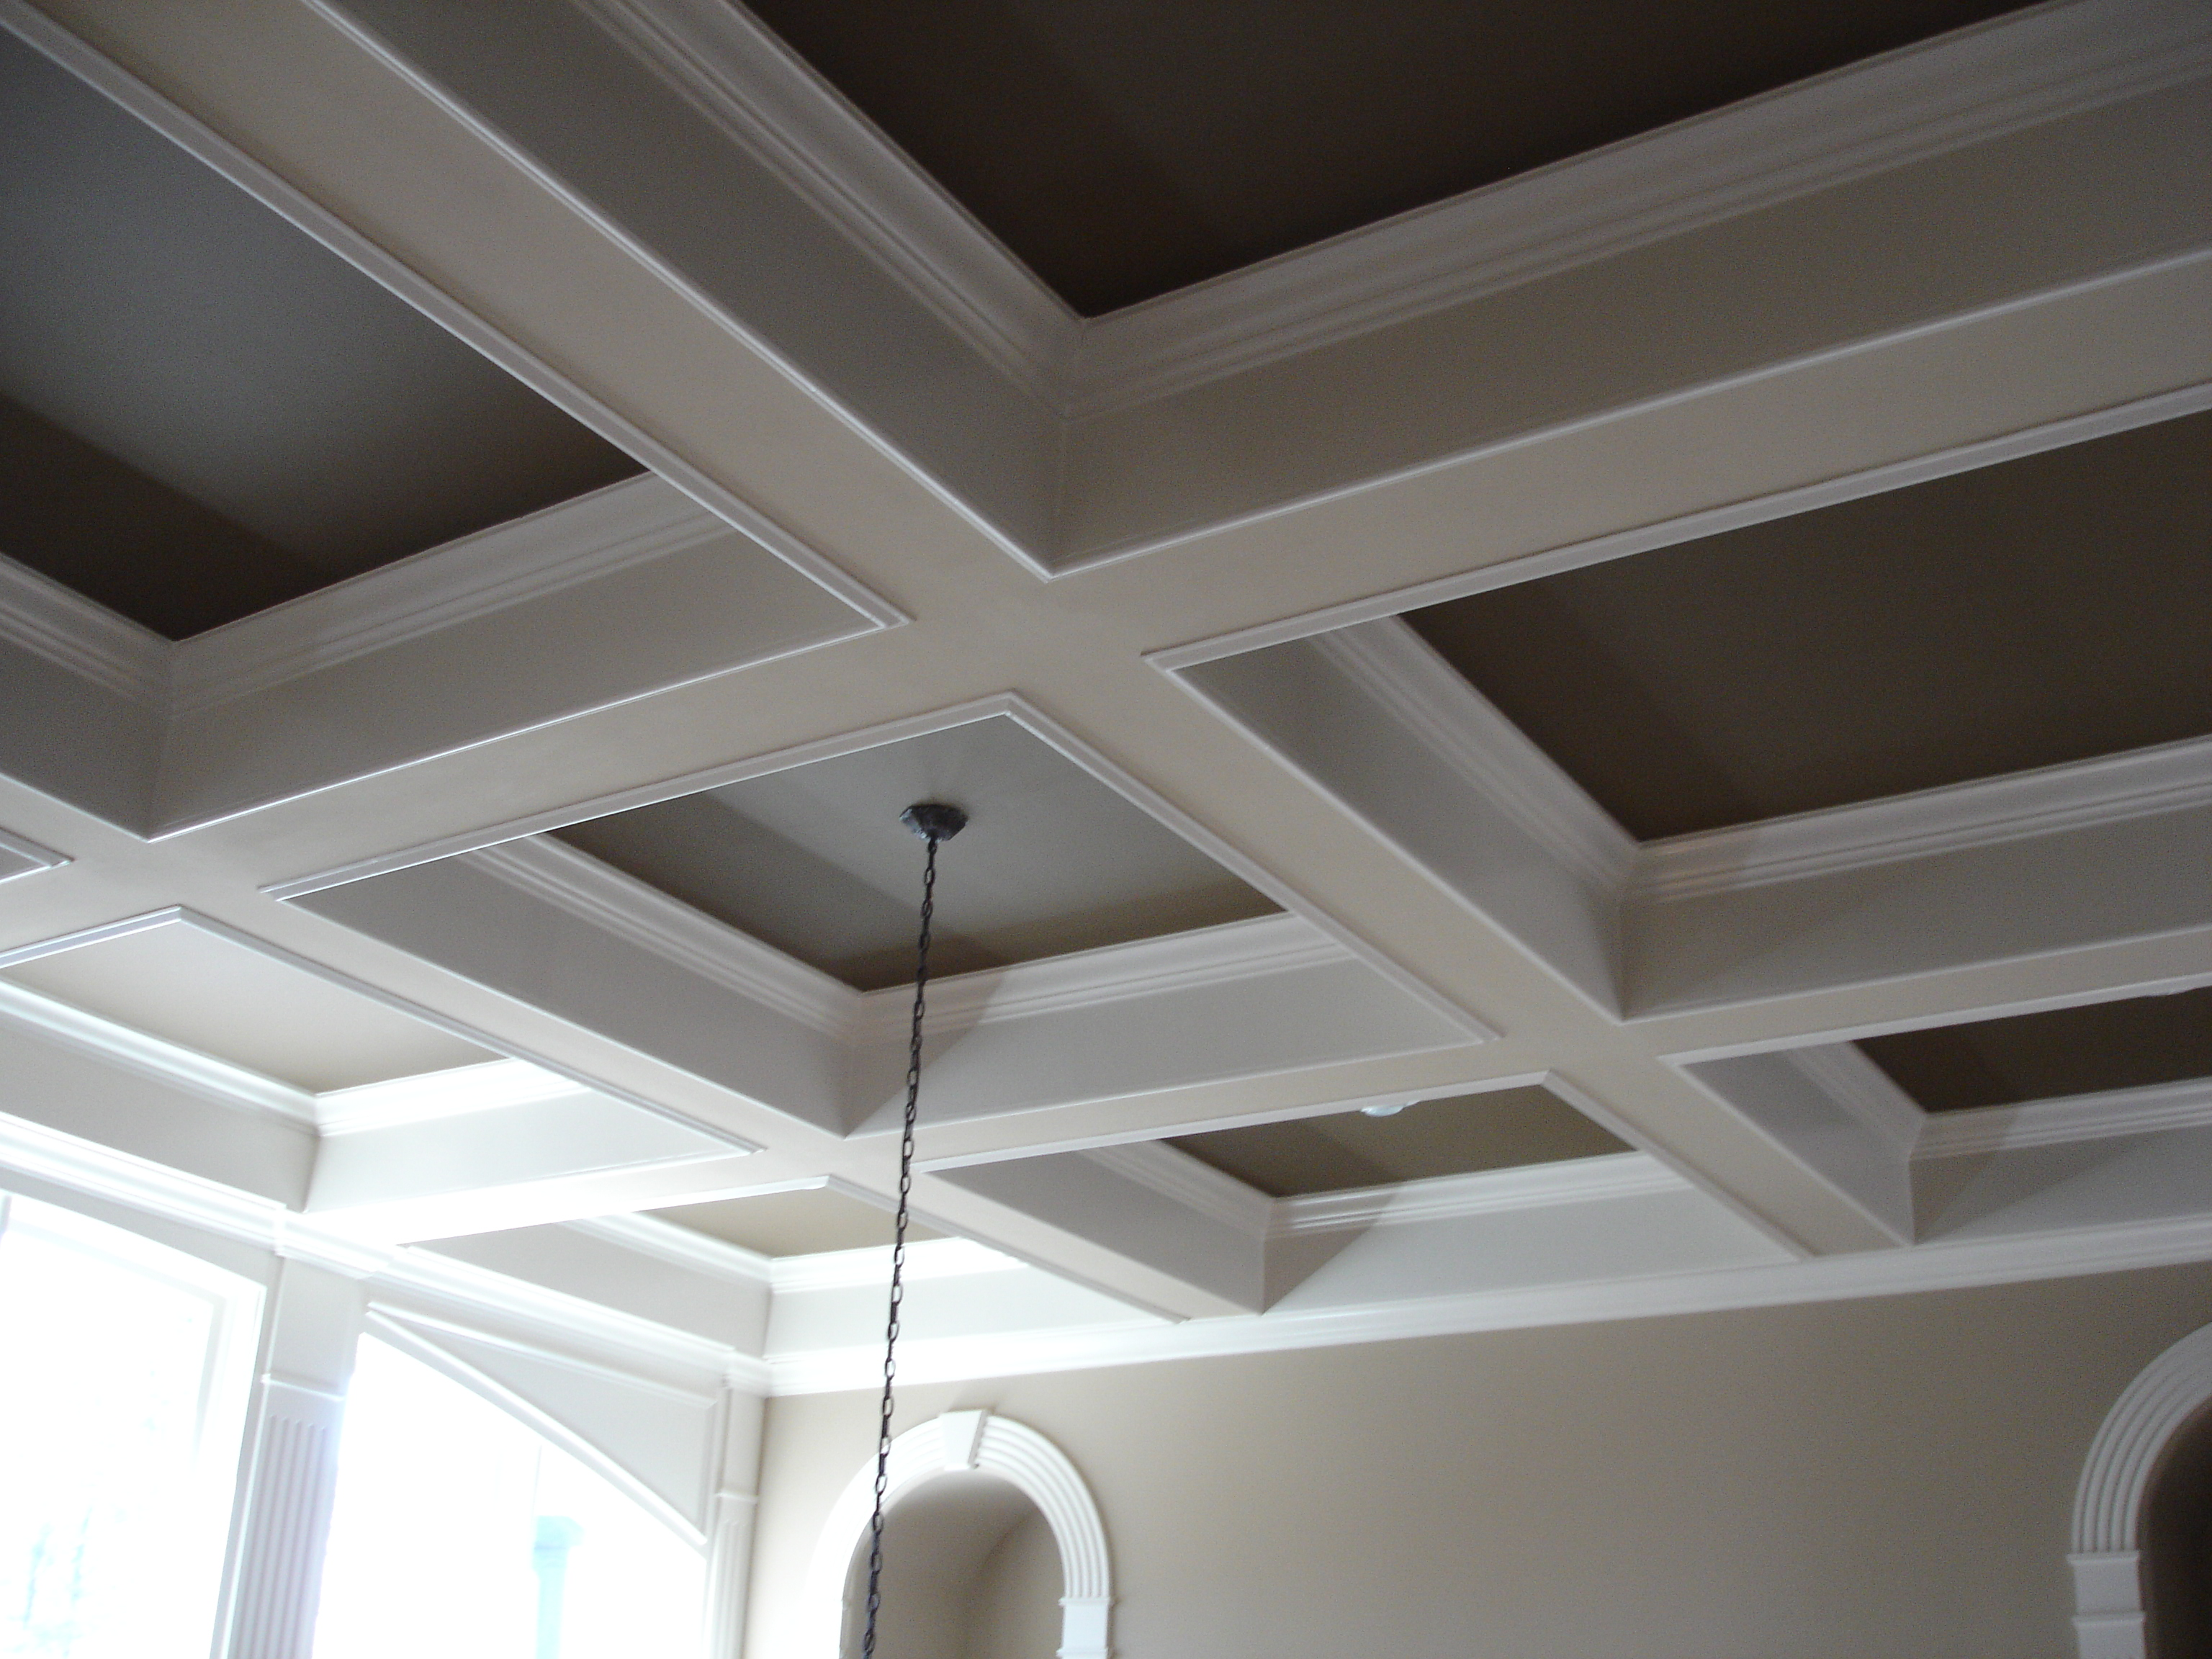 Custom Coffered Ceiling in whte and grey matched with grey wall plus chandelier